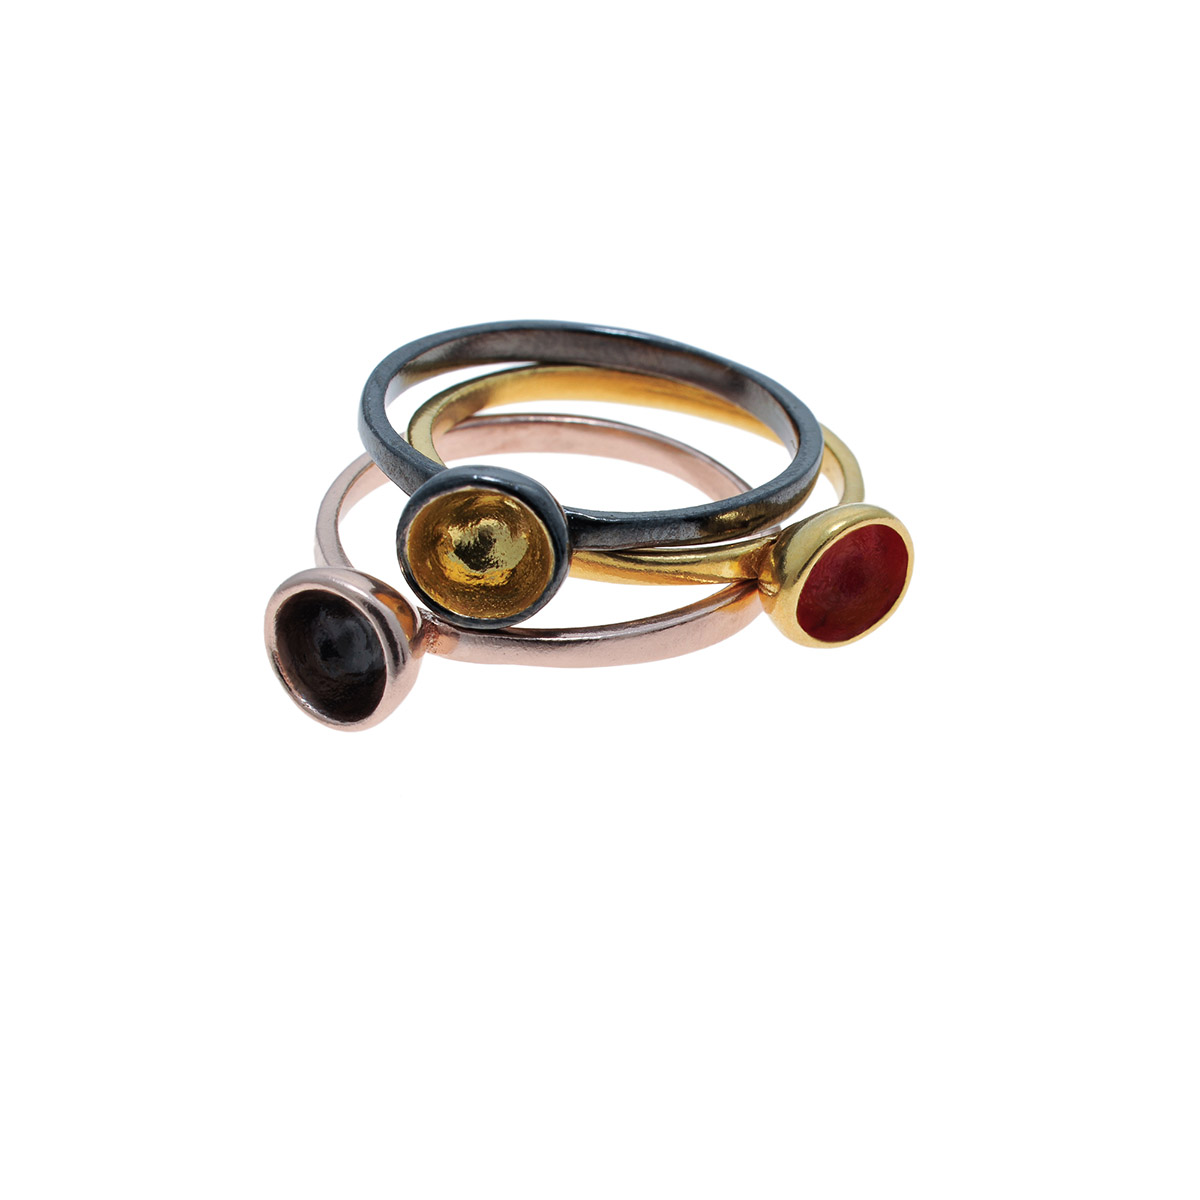 """The """"Dots"""" design is part of the """"Symbols"""" jewelry collection. The Dots jewelry is available in silver, gold, rhodium and colored with enamel paint.Design and handmade for Bead A Boo jewelry by Katerina Glinou."""